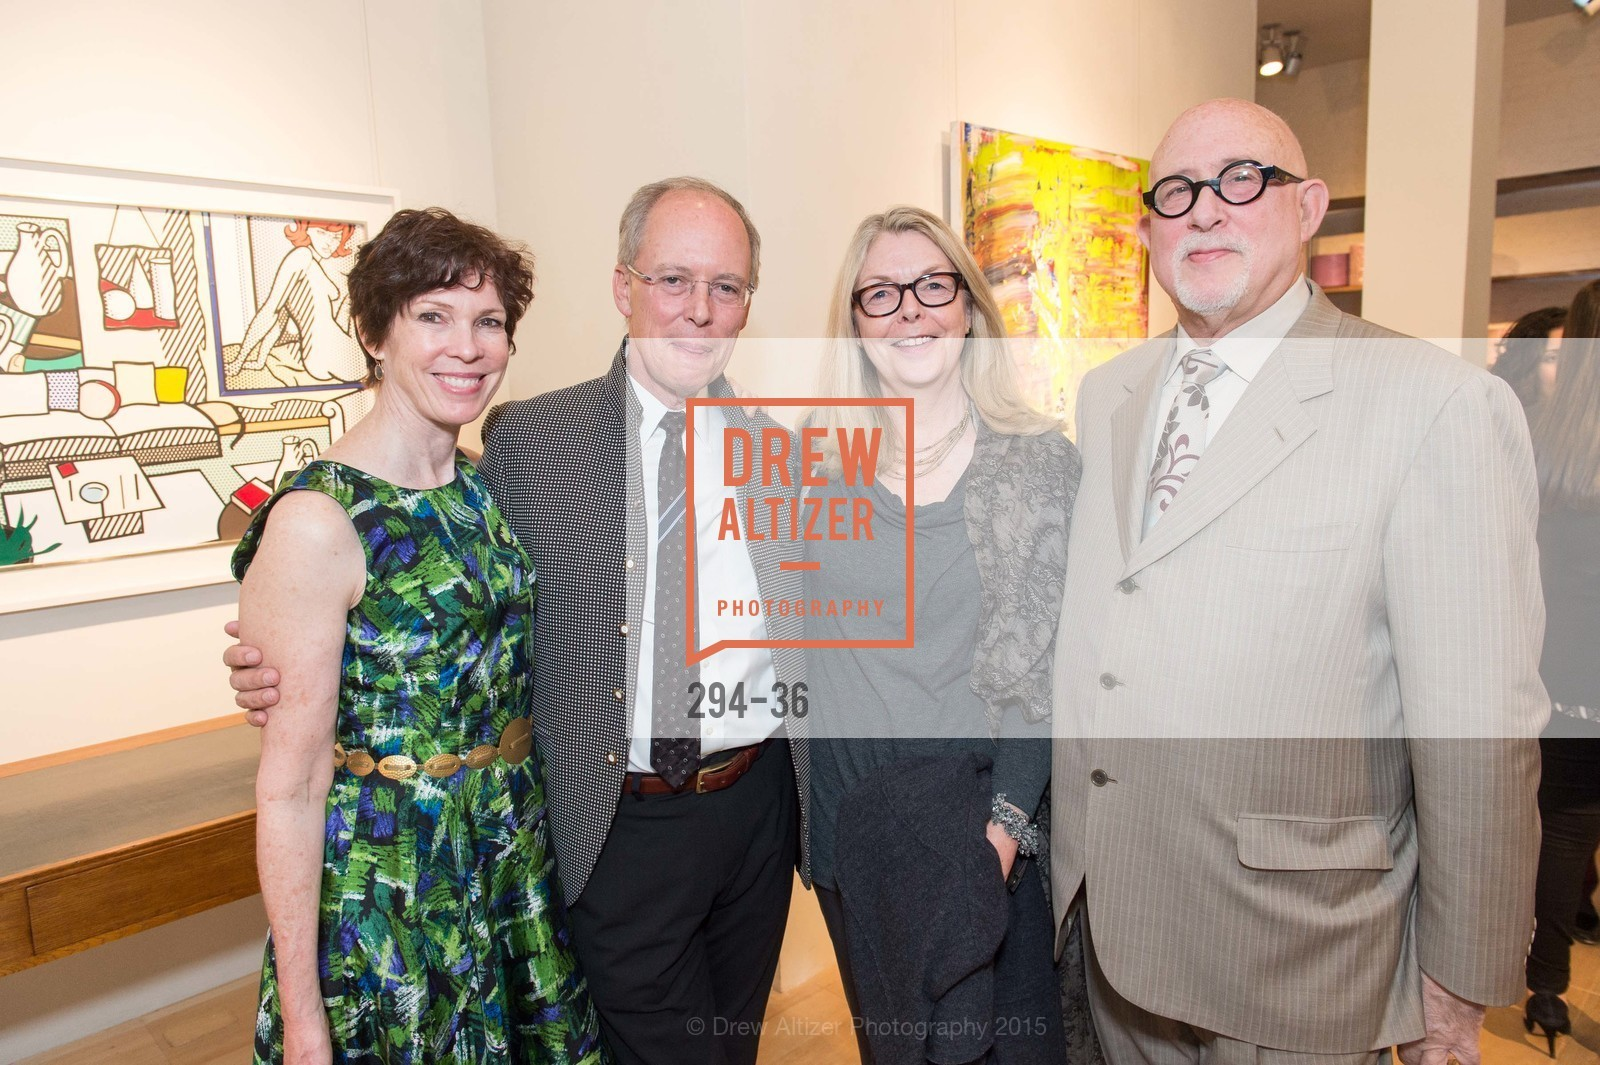 Kitty Morgan, Charles Desmarais, Lucinda Barnes, Robert Shinshack, Post War and Contemporary preview at Hedge Gallery , Hedge Gallery. 501 Pacific Ave, San Francisco, CA 94133, April 16th, 2015,Drew Altizer, Drew Altizer Photography, full-service event agency, private events, San Francisco photographer, photographer California